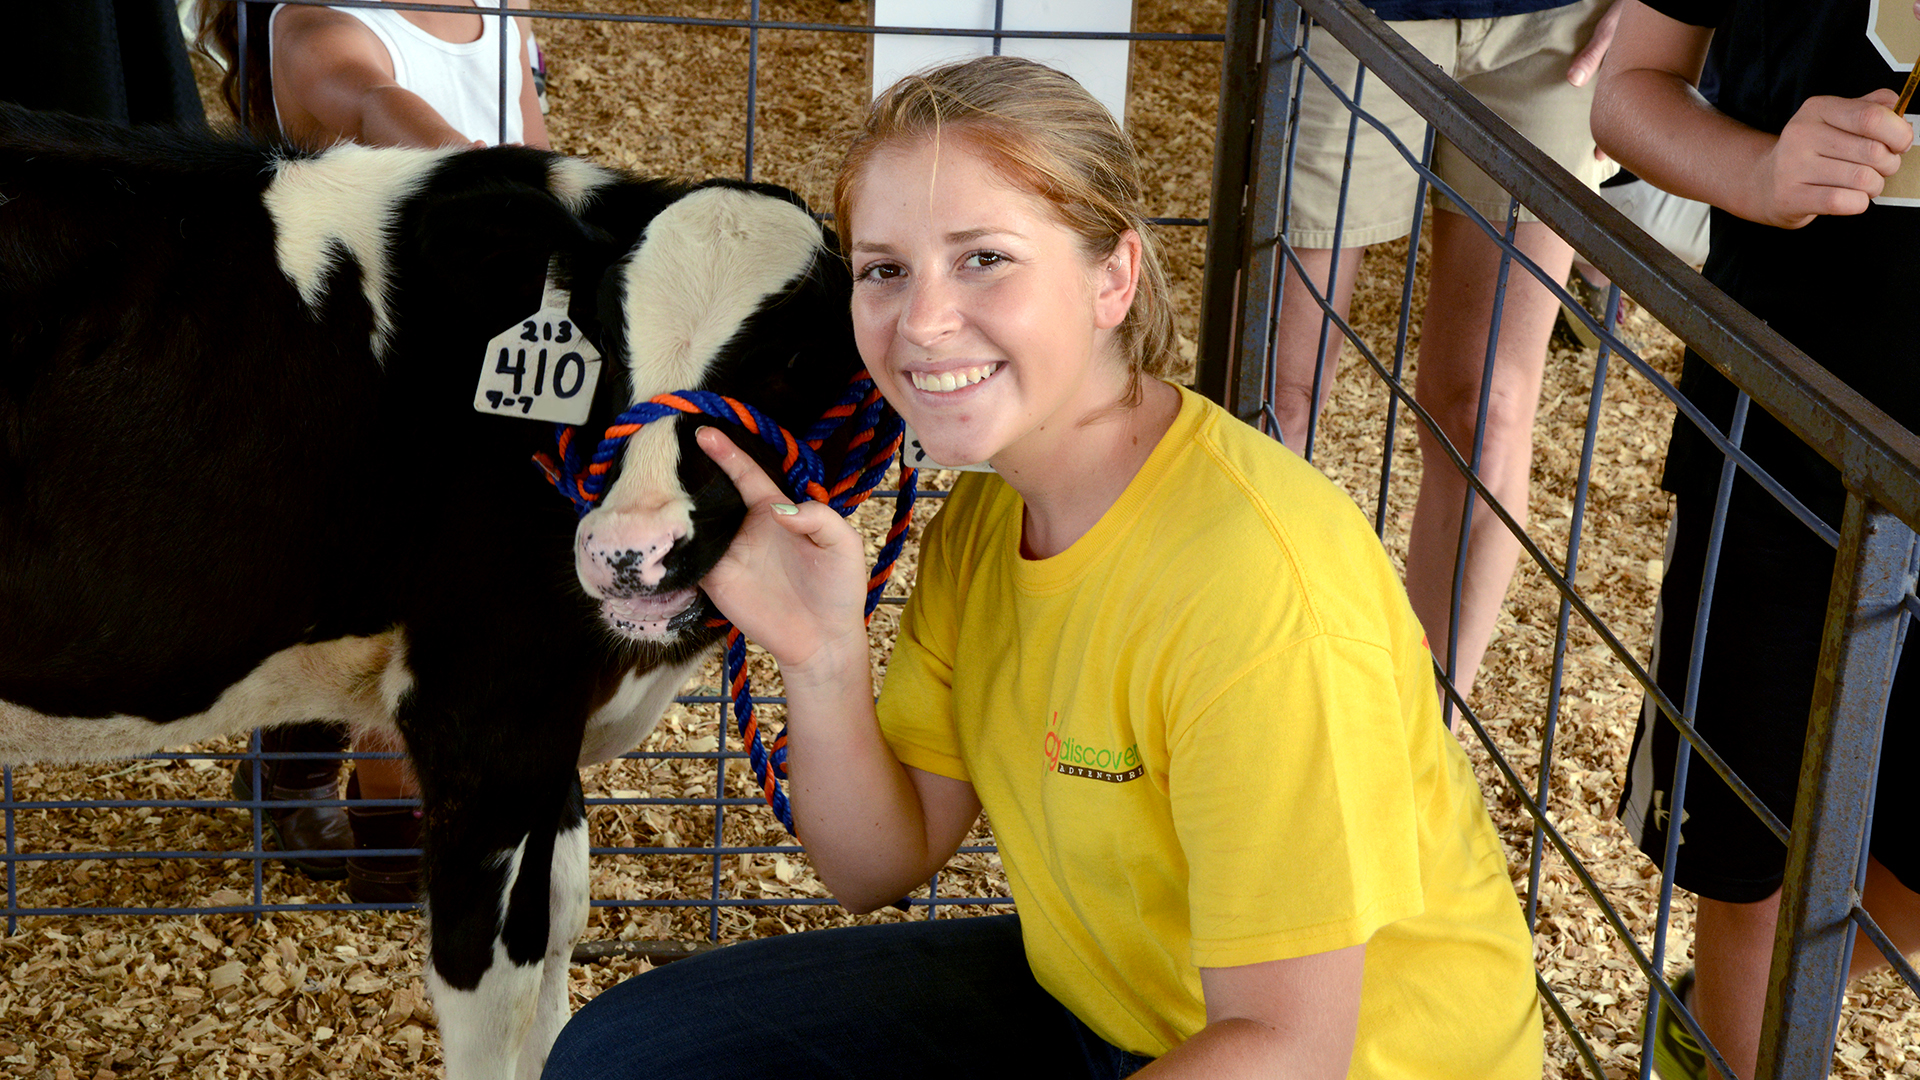 Auburn-Animal-Sciences-Major-Student-Selfie-with-Dairy-Cow-at-Ag-Discovery-Adventure-Event